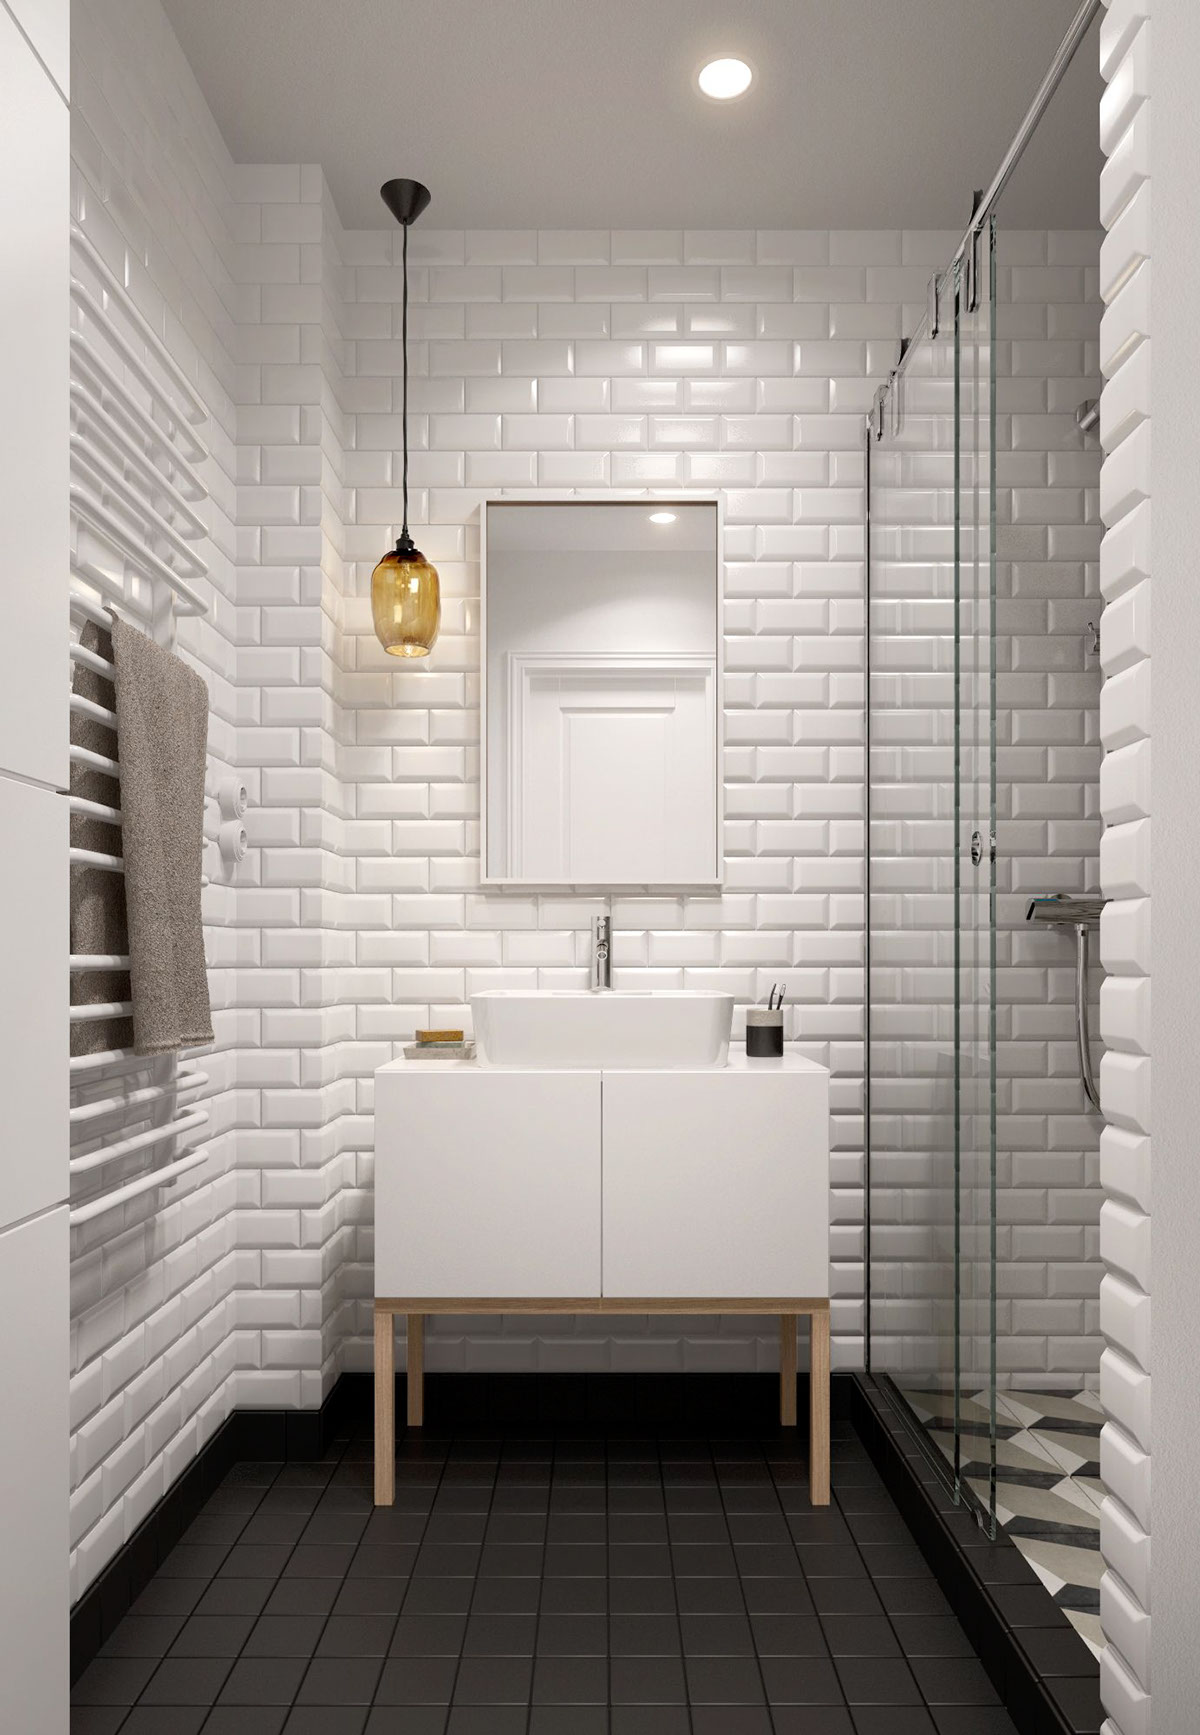 A midcentury inspired apartment with scandinavian tendencies Interior design ideas bathroom tiles